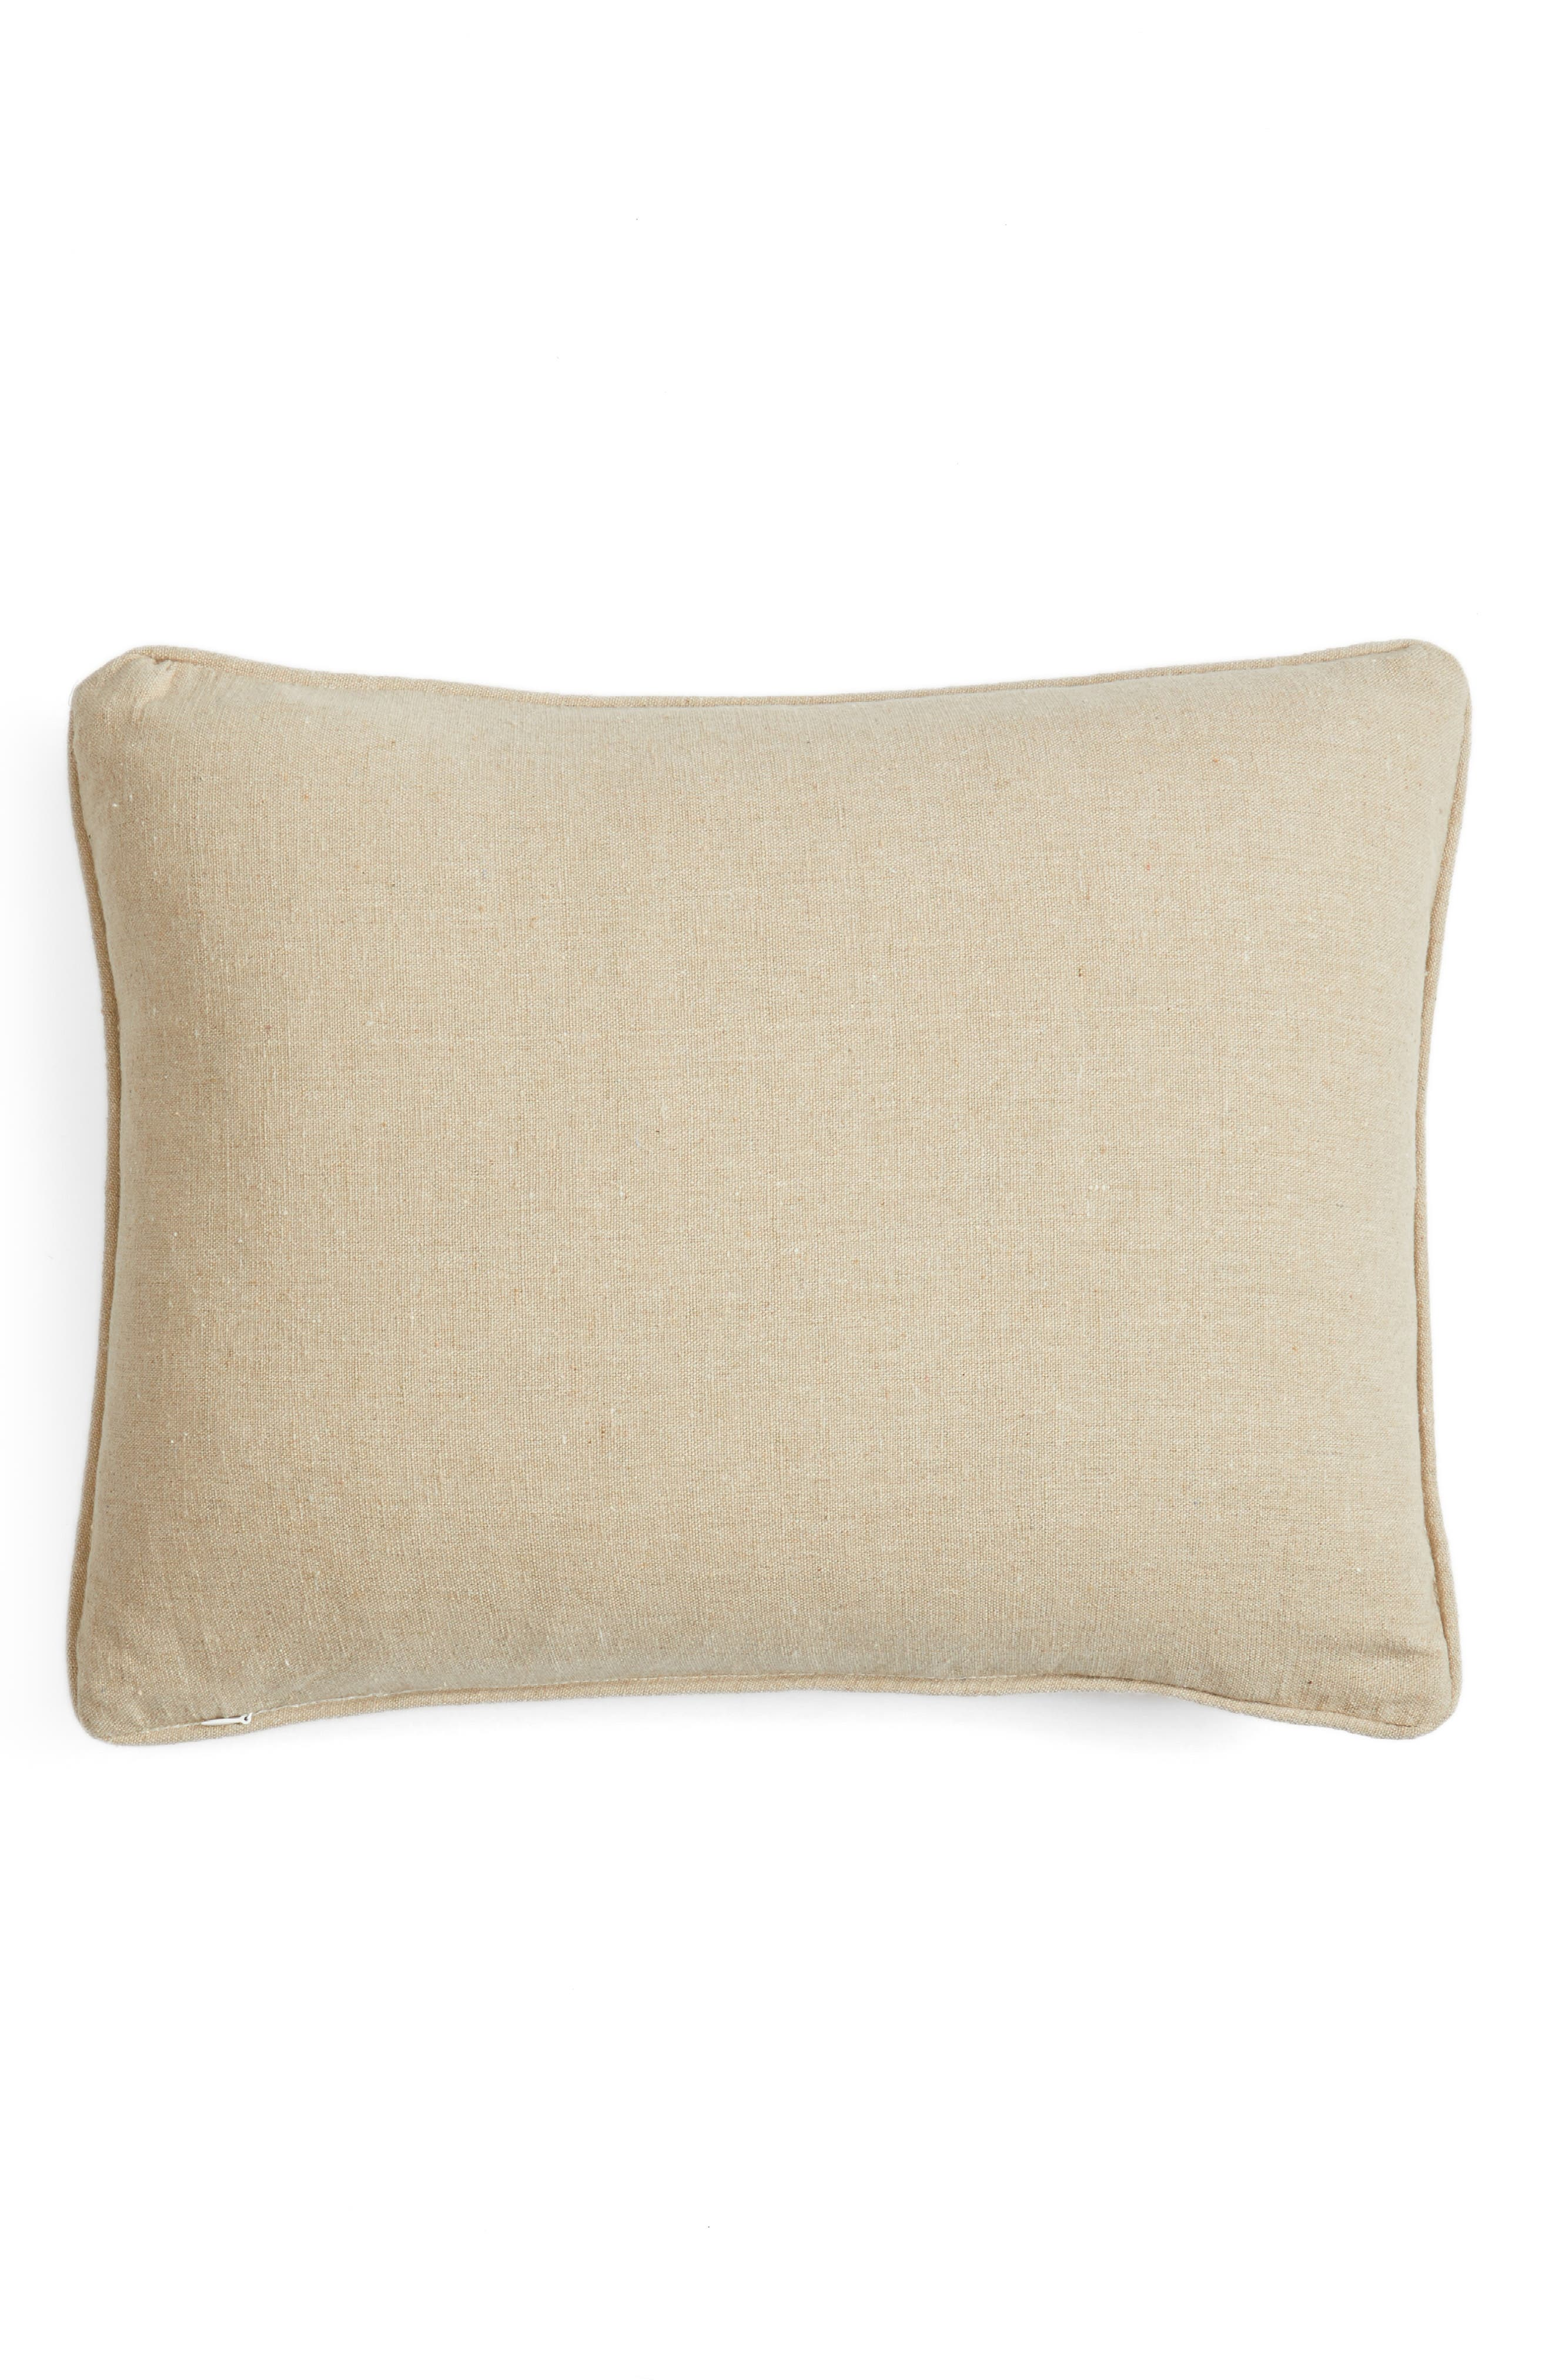 Fira Crewel Stitch Accent Pillow,                             Alternate thumbnail 2, color,                             Red